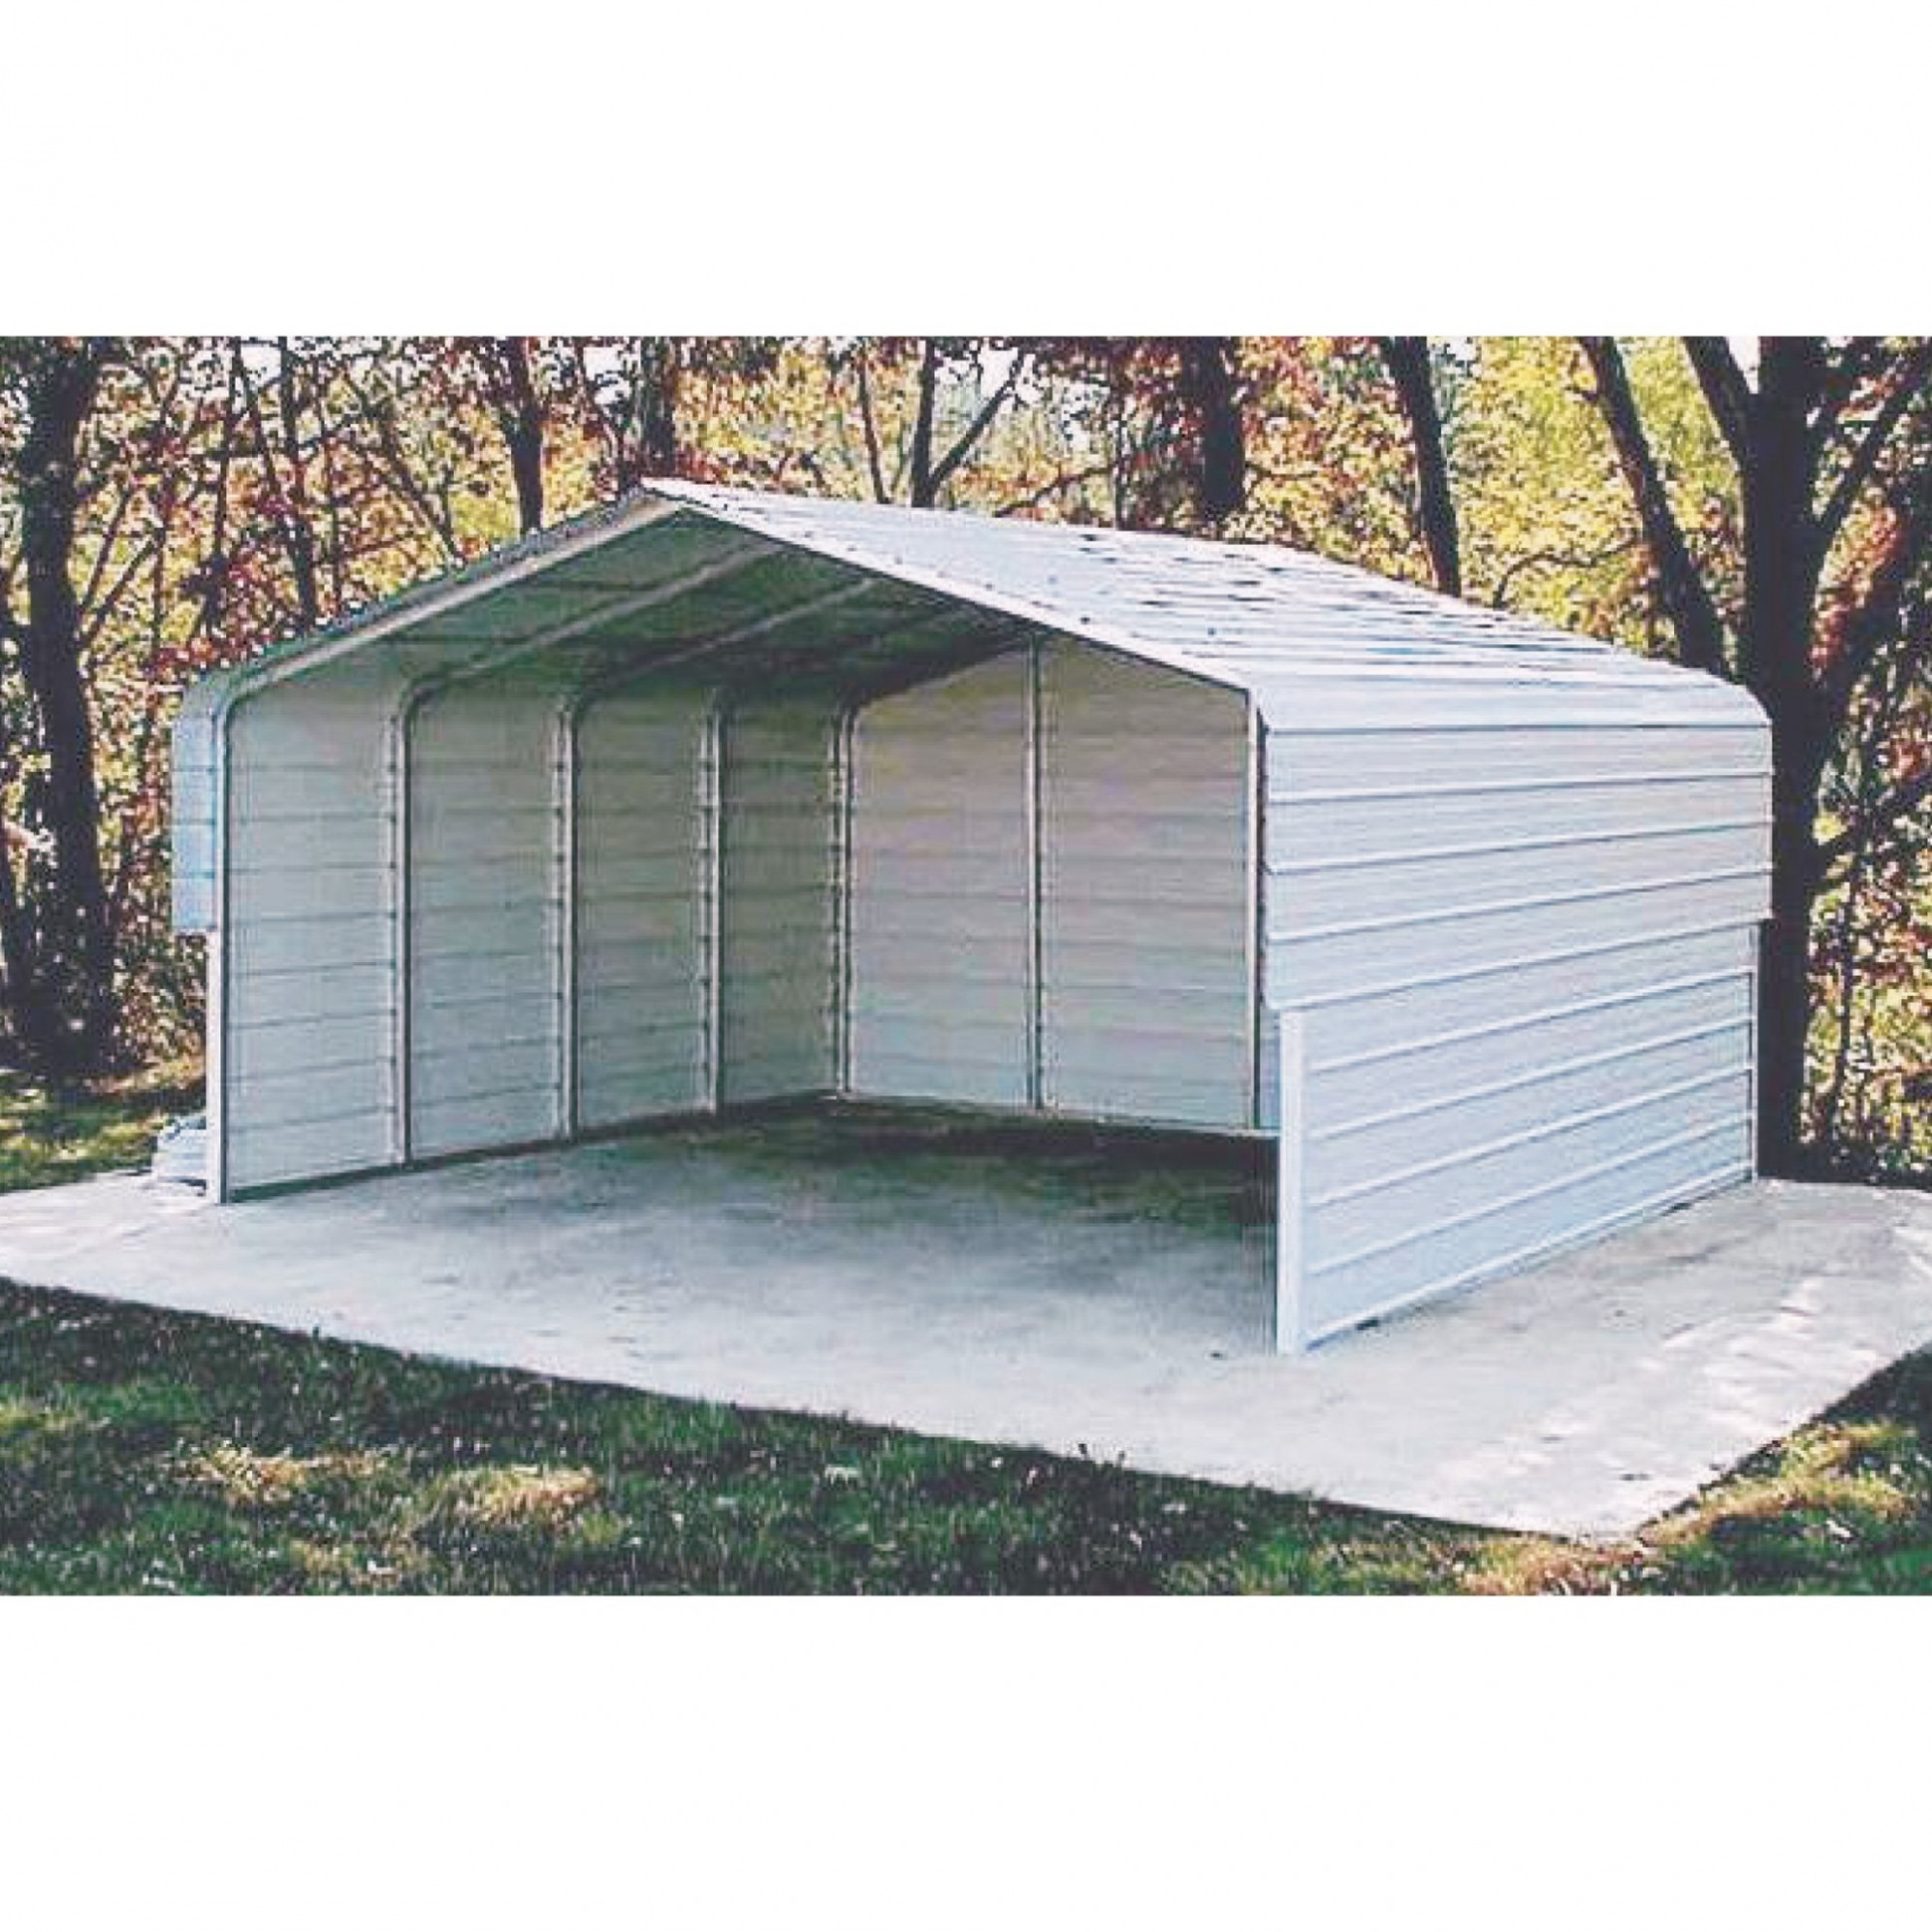 How Metal Shelters Is Going To Change Your Business Strategies | metal shelters